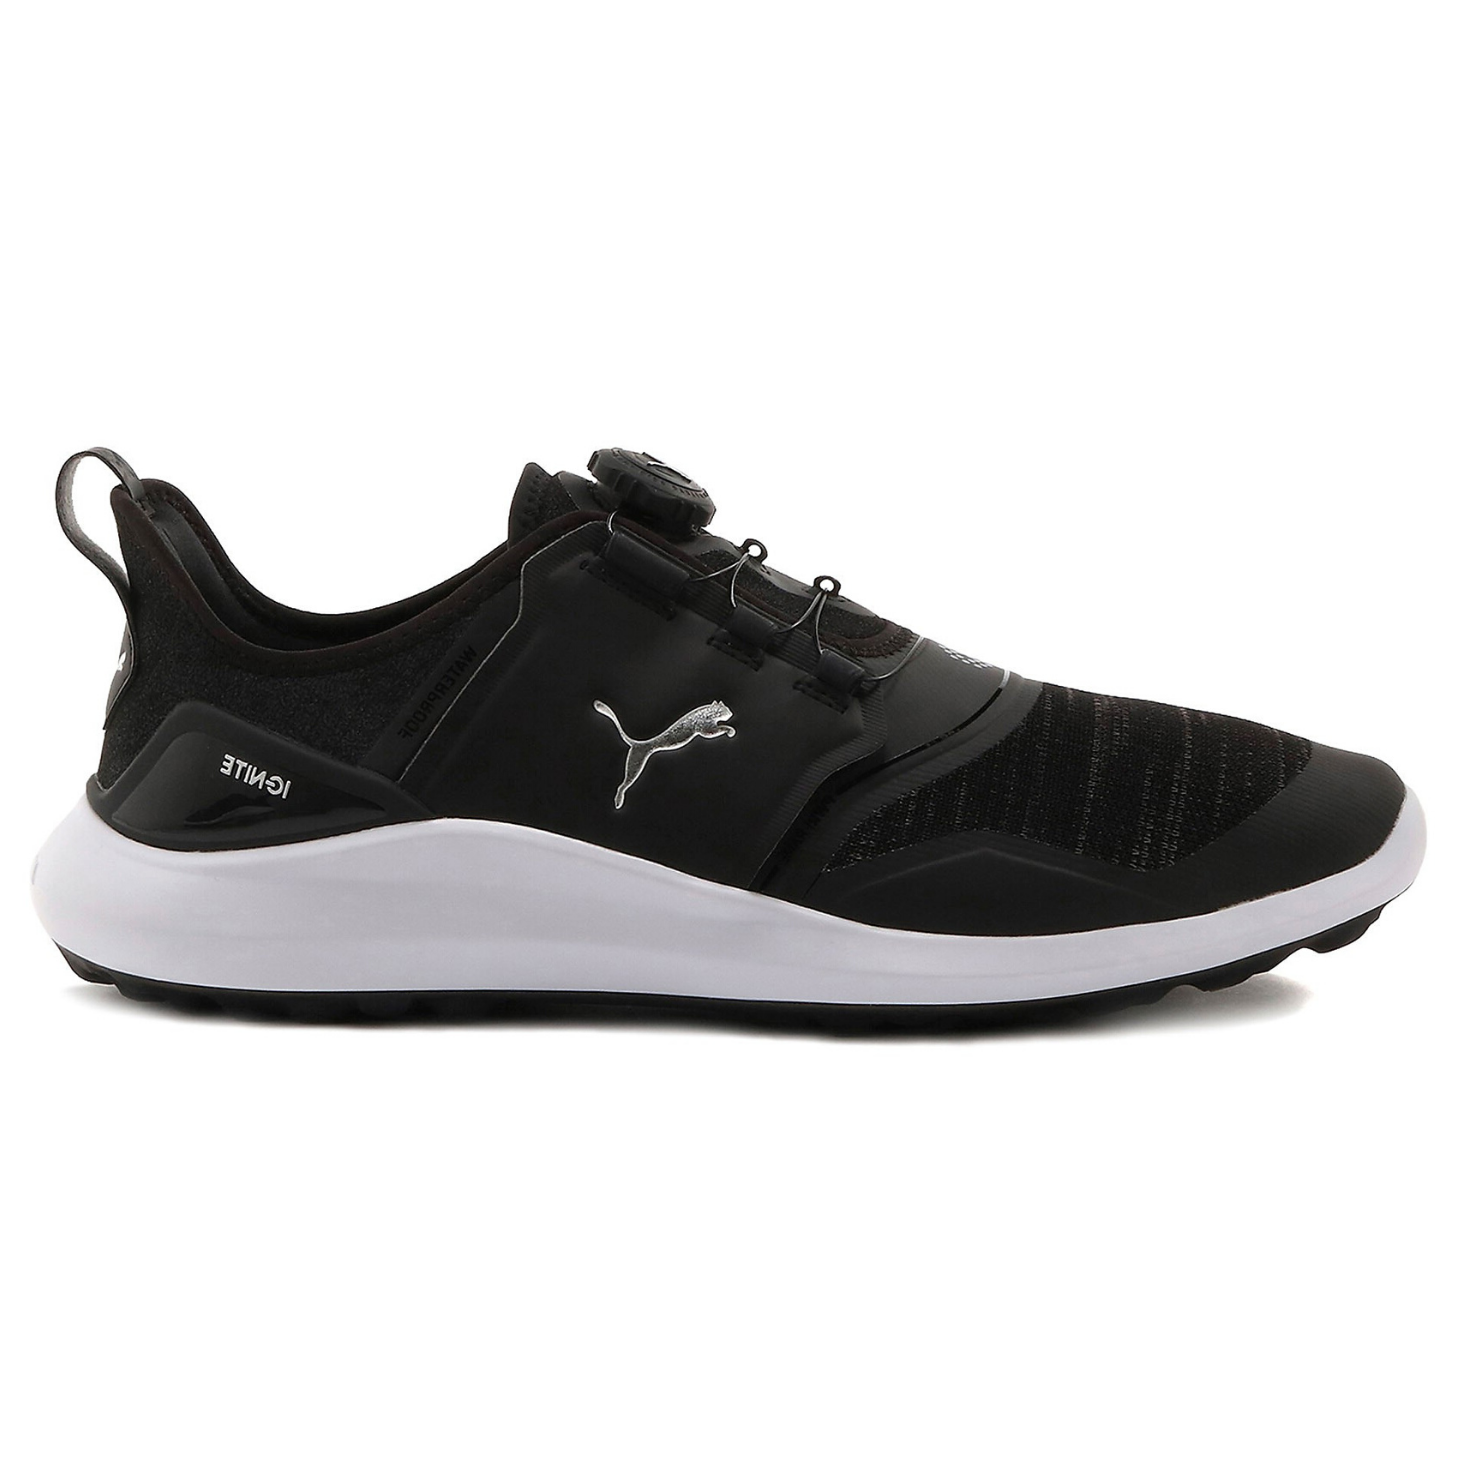 Golfskor Puma Golf Ignite NXT Disc Svart